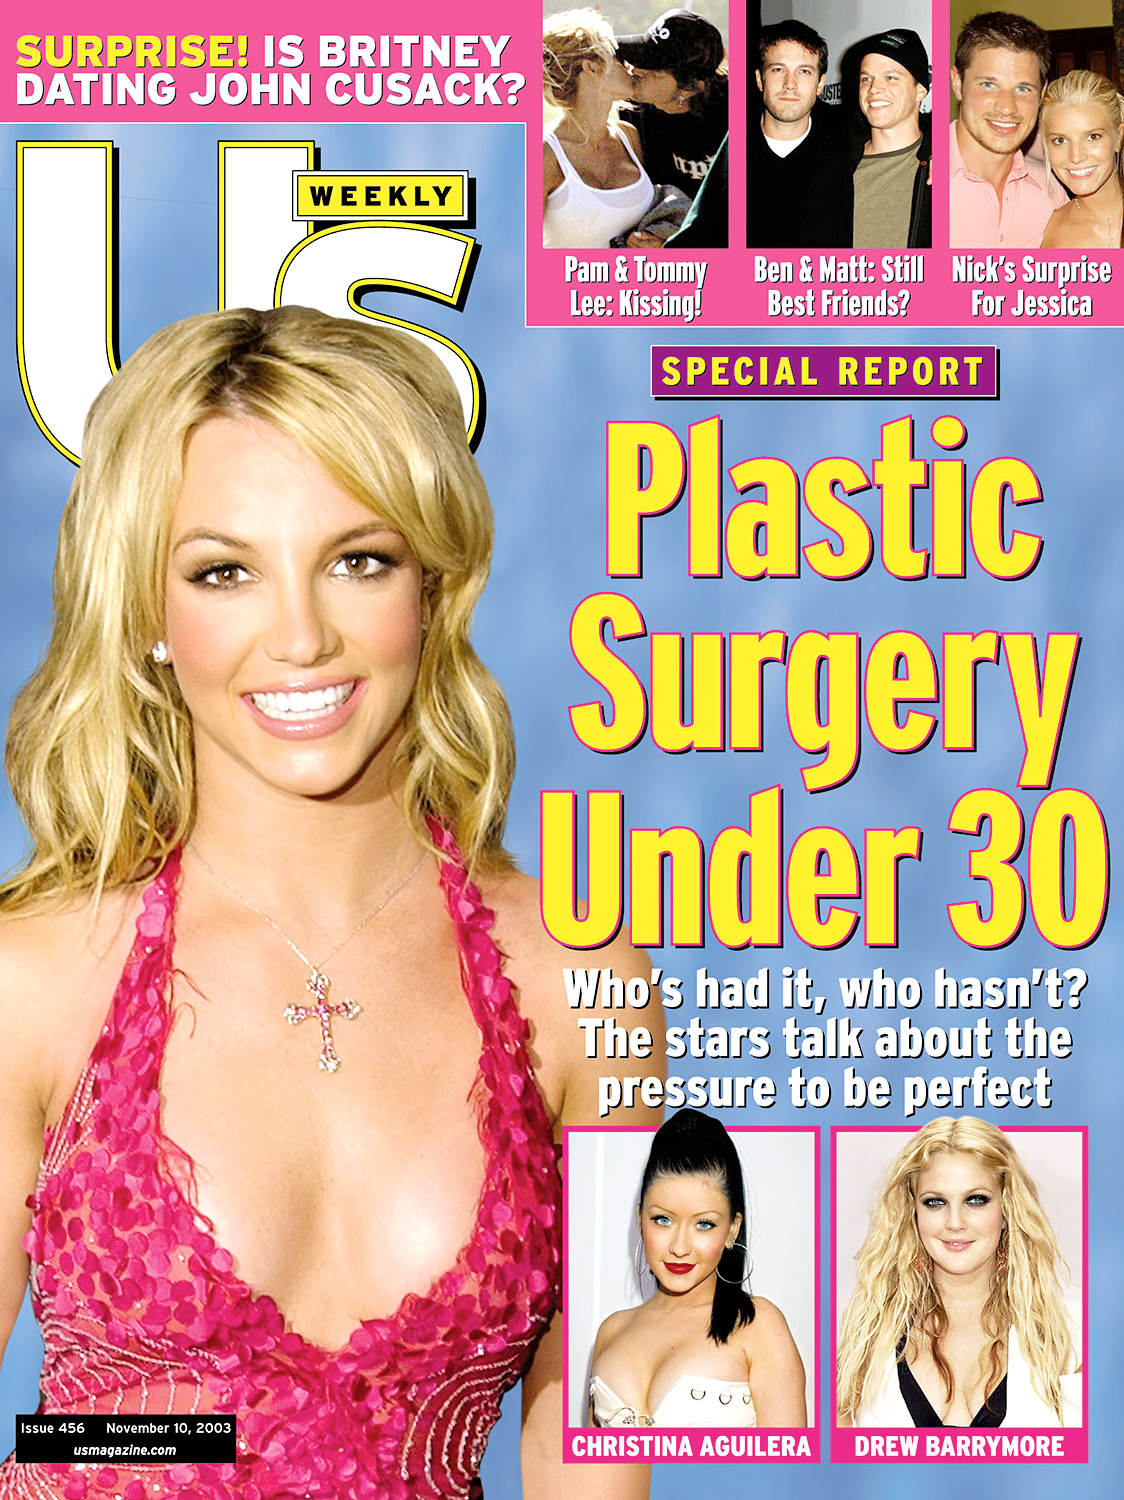 Special Report: Plastic Surgery Under 30 -- Who's Had It, Who Hasn't?